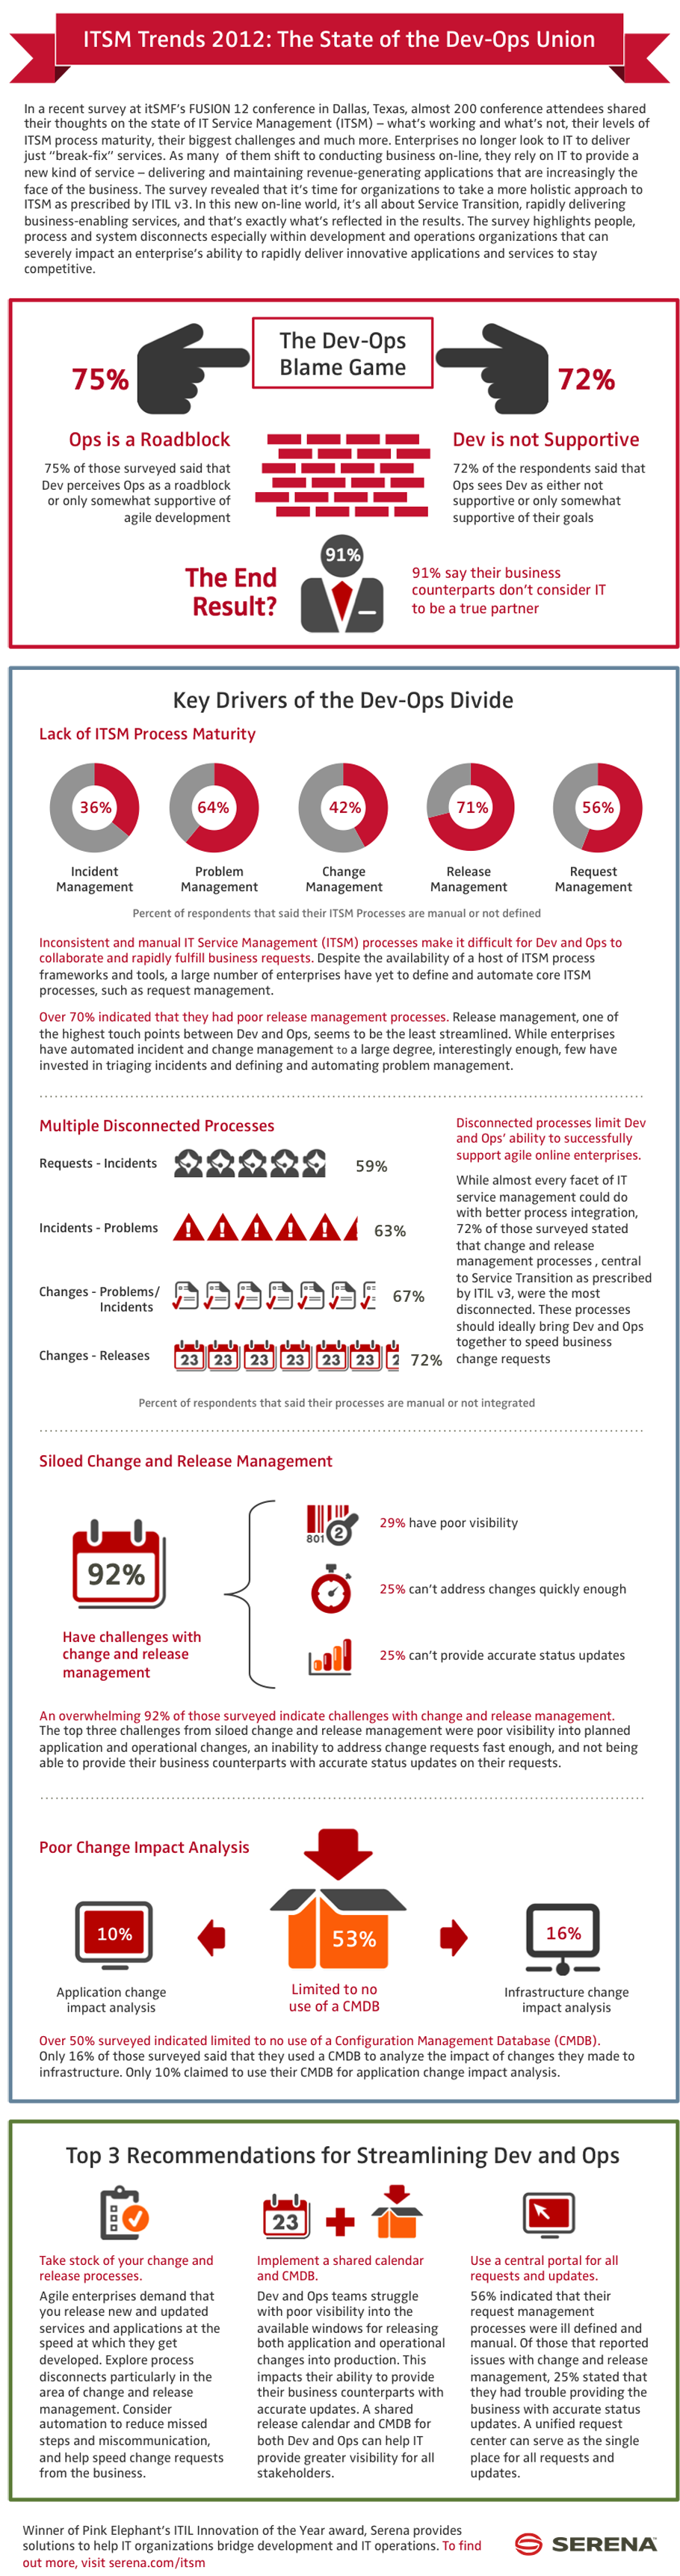 itsm-trends-survey-2012-the-state-of-the-devops-union_50b909e23bfe0